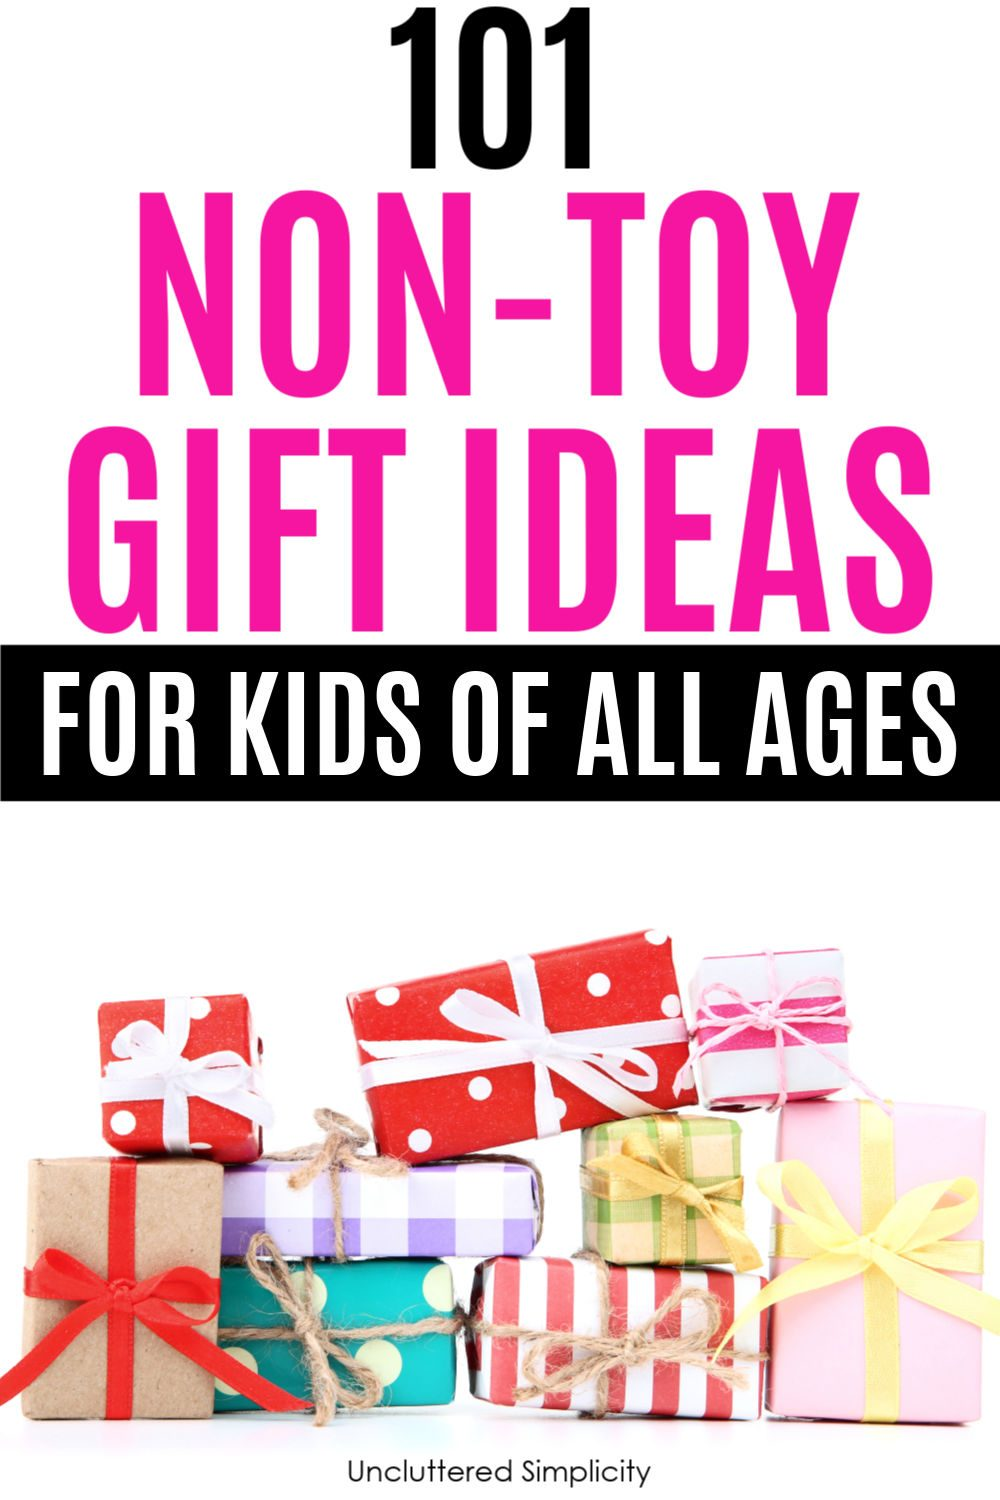 Looking for some clutter-free gift ideas for kids? Check out this massive list of non-toy kids gift ideas that are creative and affordable! #unclutteredsimplicity